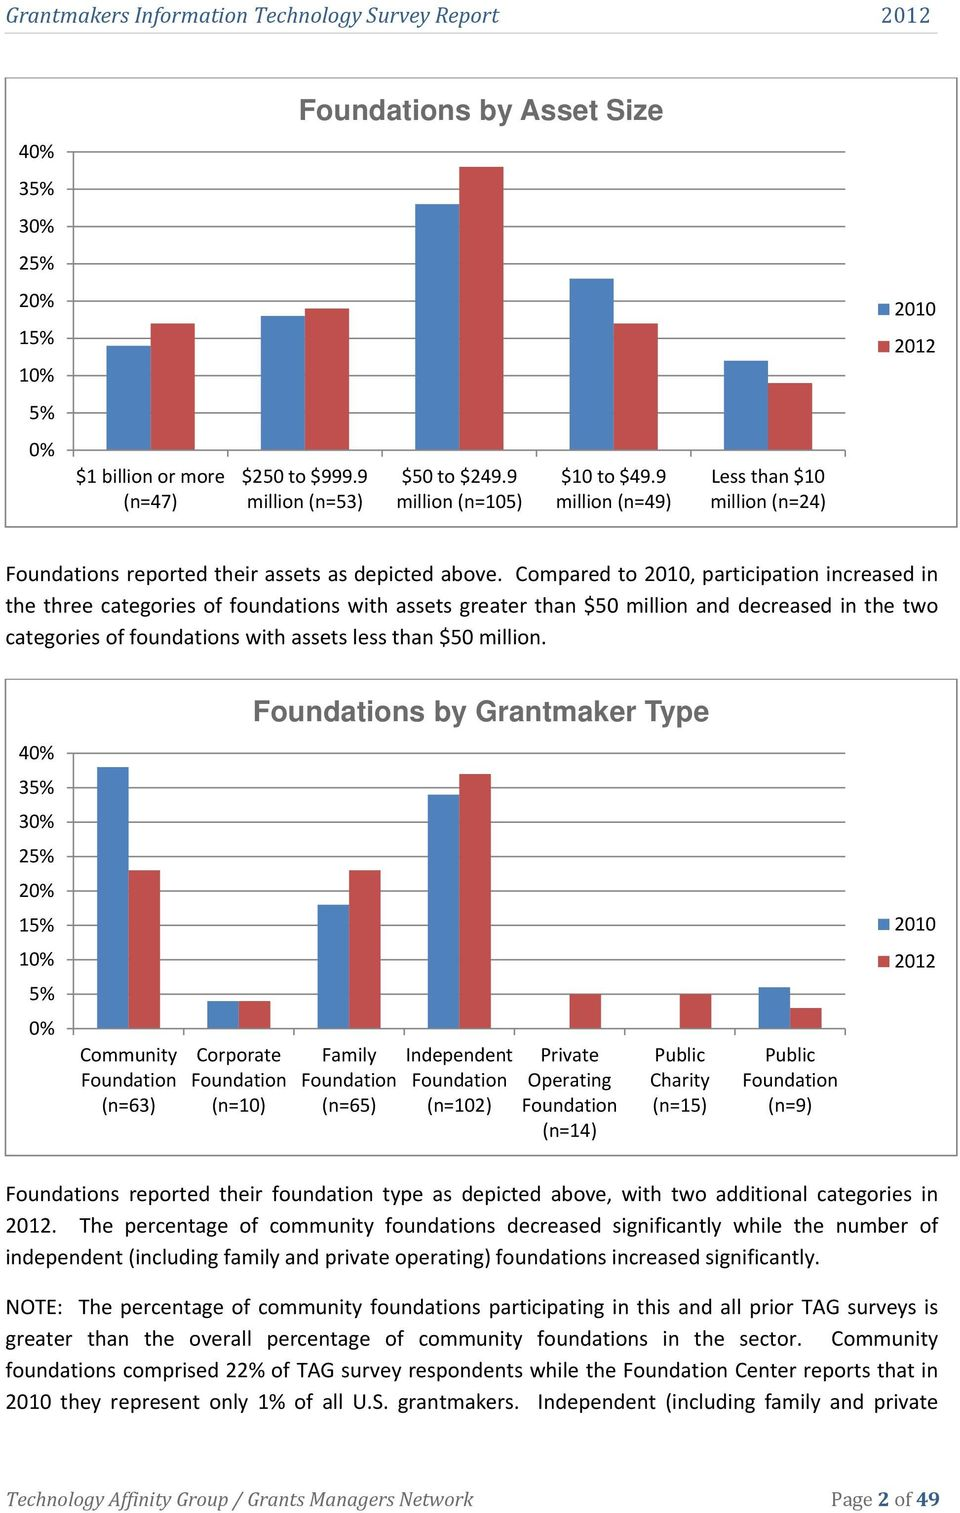 Compared to 2010, participation increased in the three categories of foundations with assets greater than $50 million and decreased in the two categories of foundations with assets less than $50